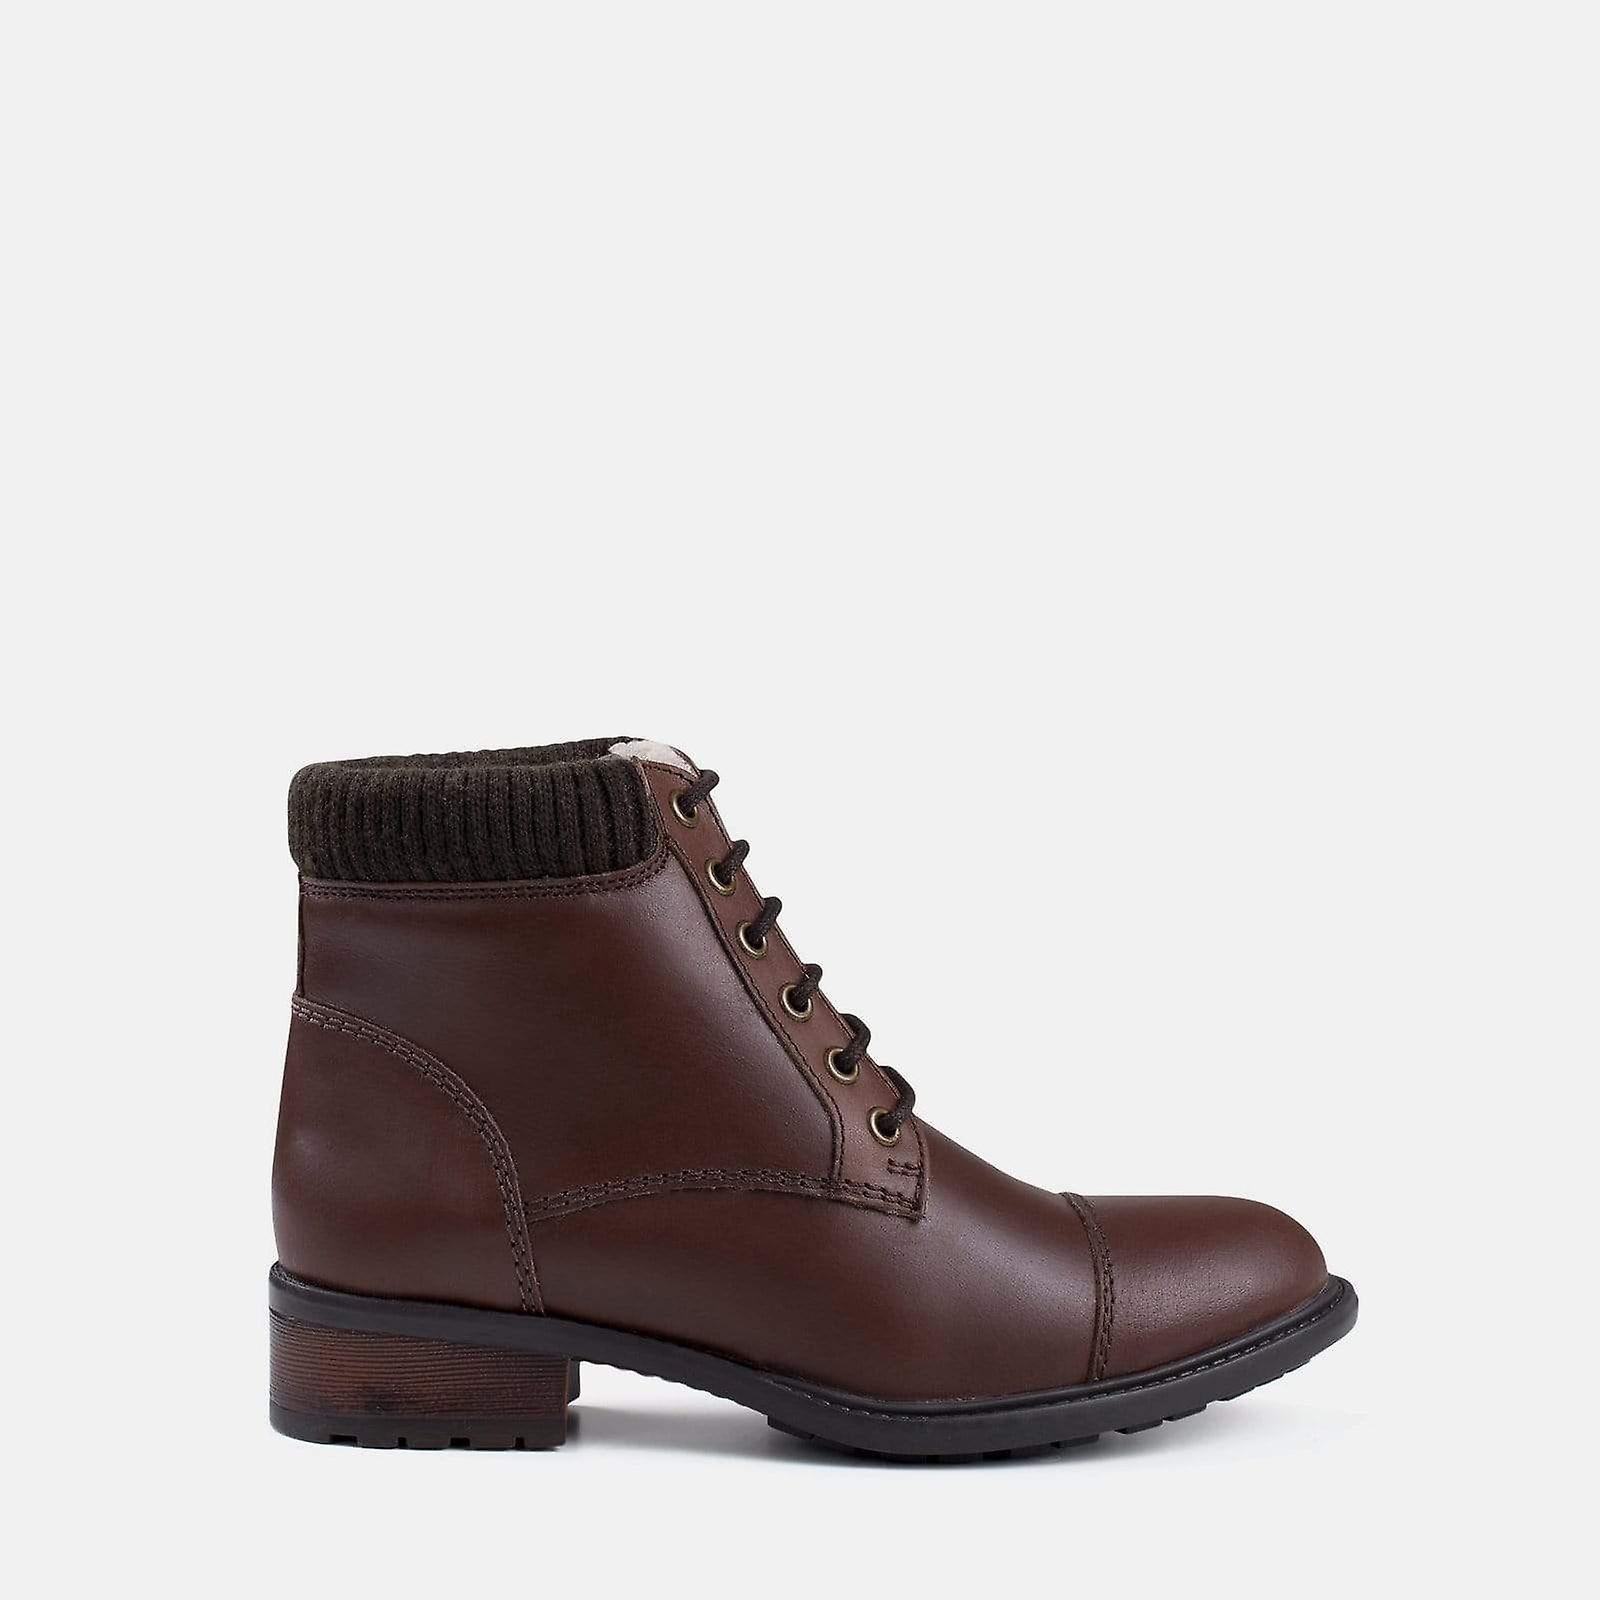 Mika brown leather military boot UifNU